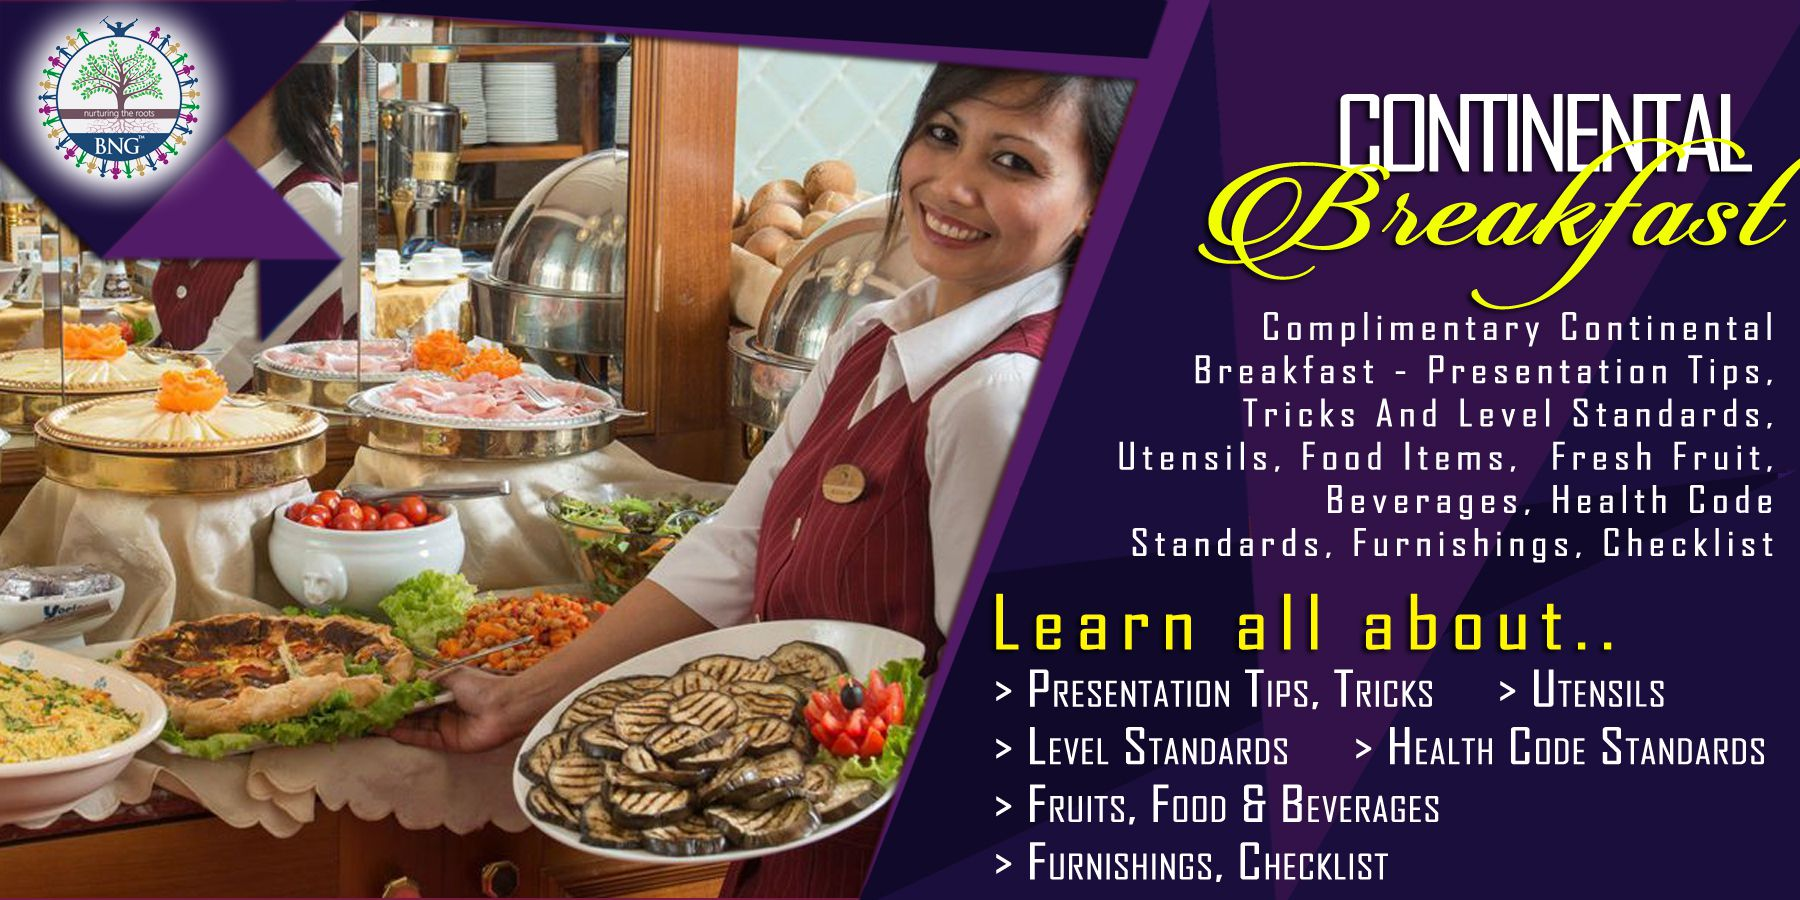 Complimentary Continental Breakfast - Presentation Tips, Tricks And Level Standards, Utensils, Food Items, Fresh Fruit, Beverages, Health Code Standards, Furnishings, Checklist by BNG Hotel Management Kolkata